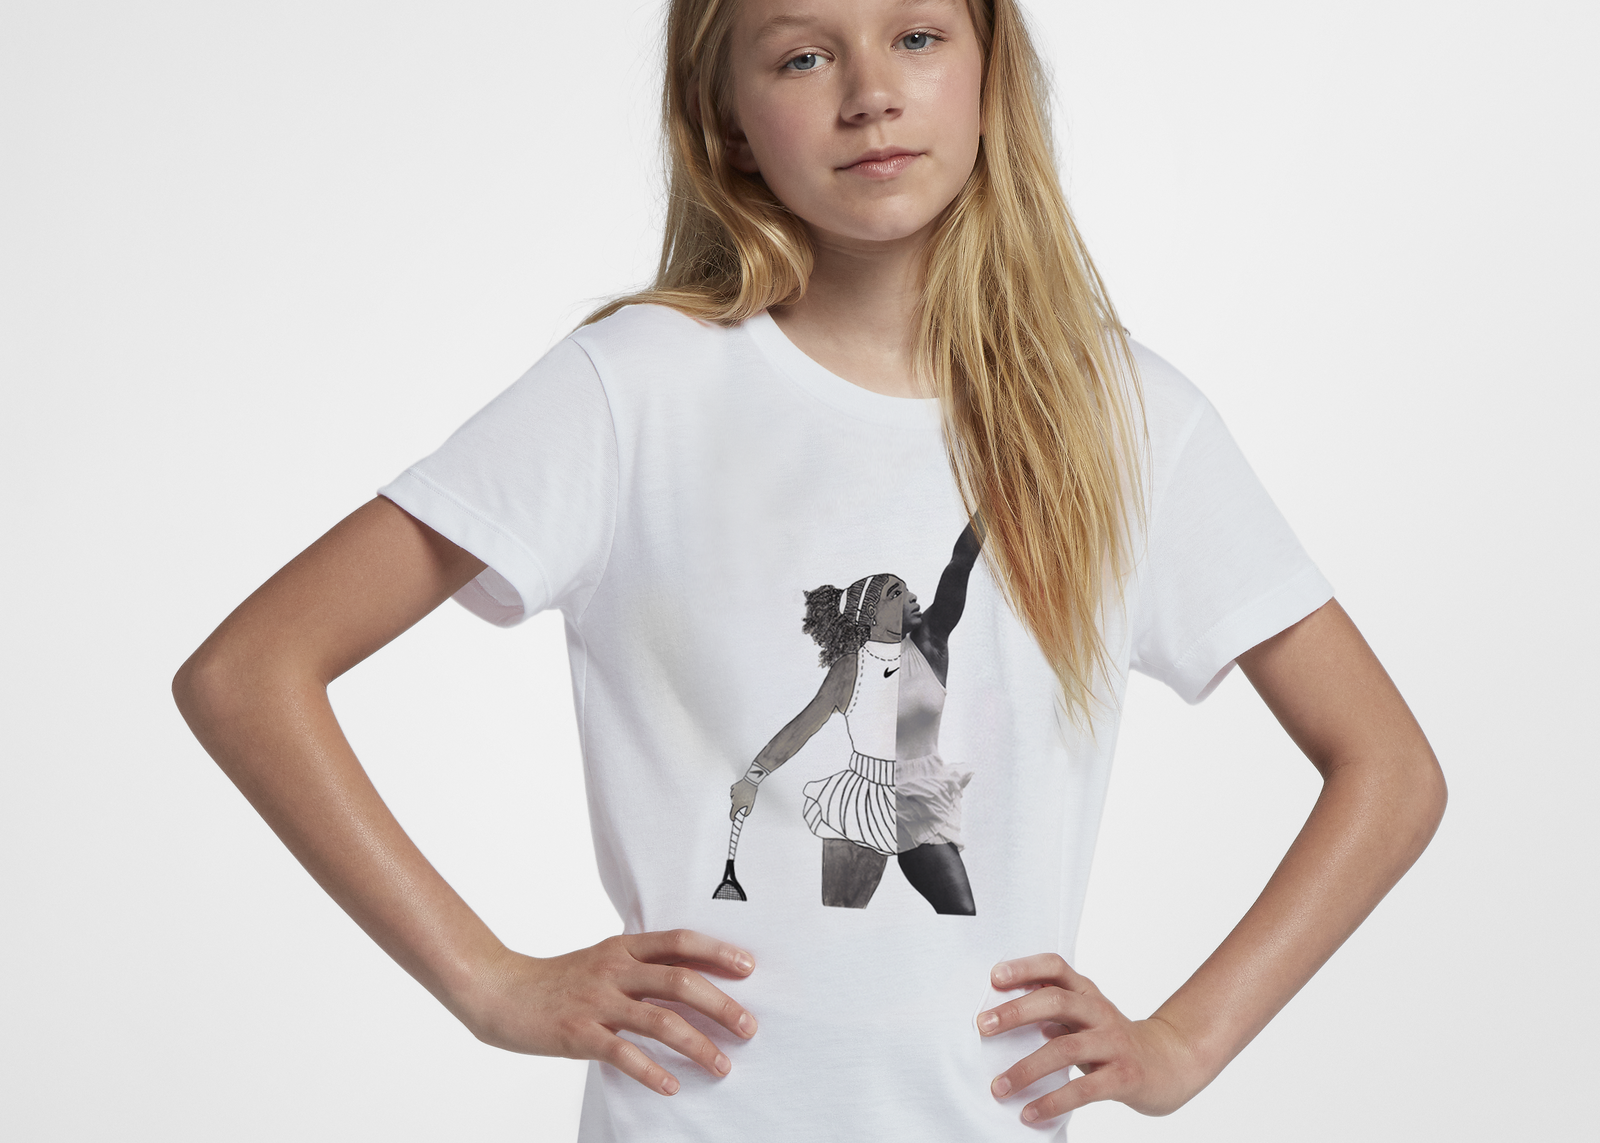 Nike Partners with 9-Year-Old Designer Dear Giana for A Girl-Power Sportswear Collaboration 3